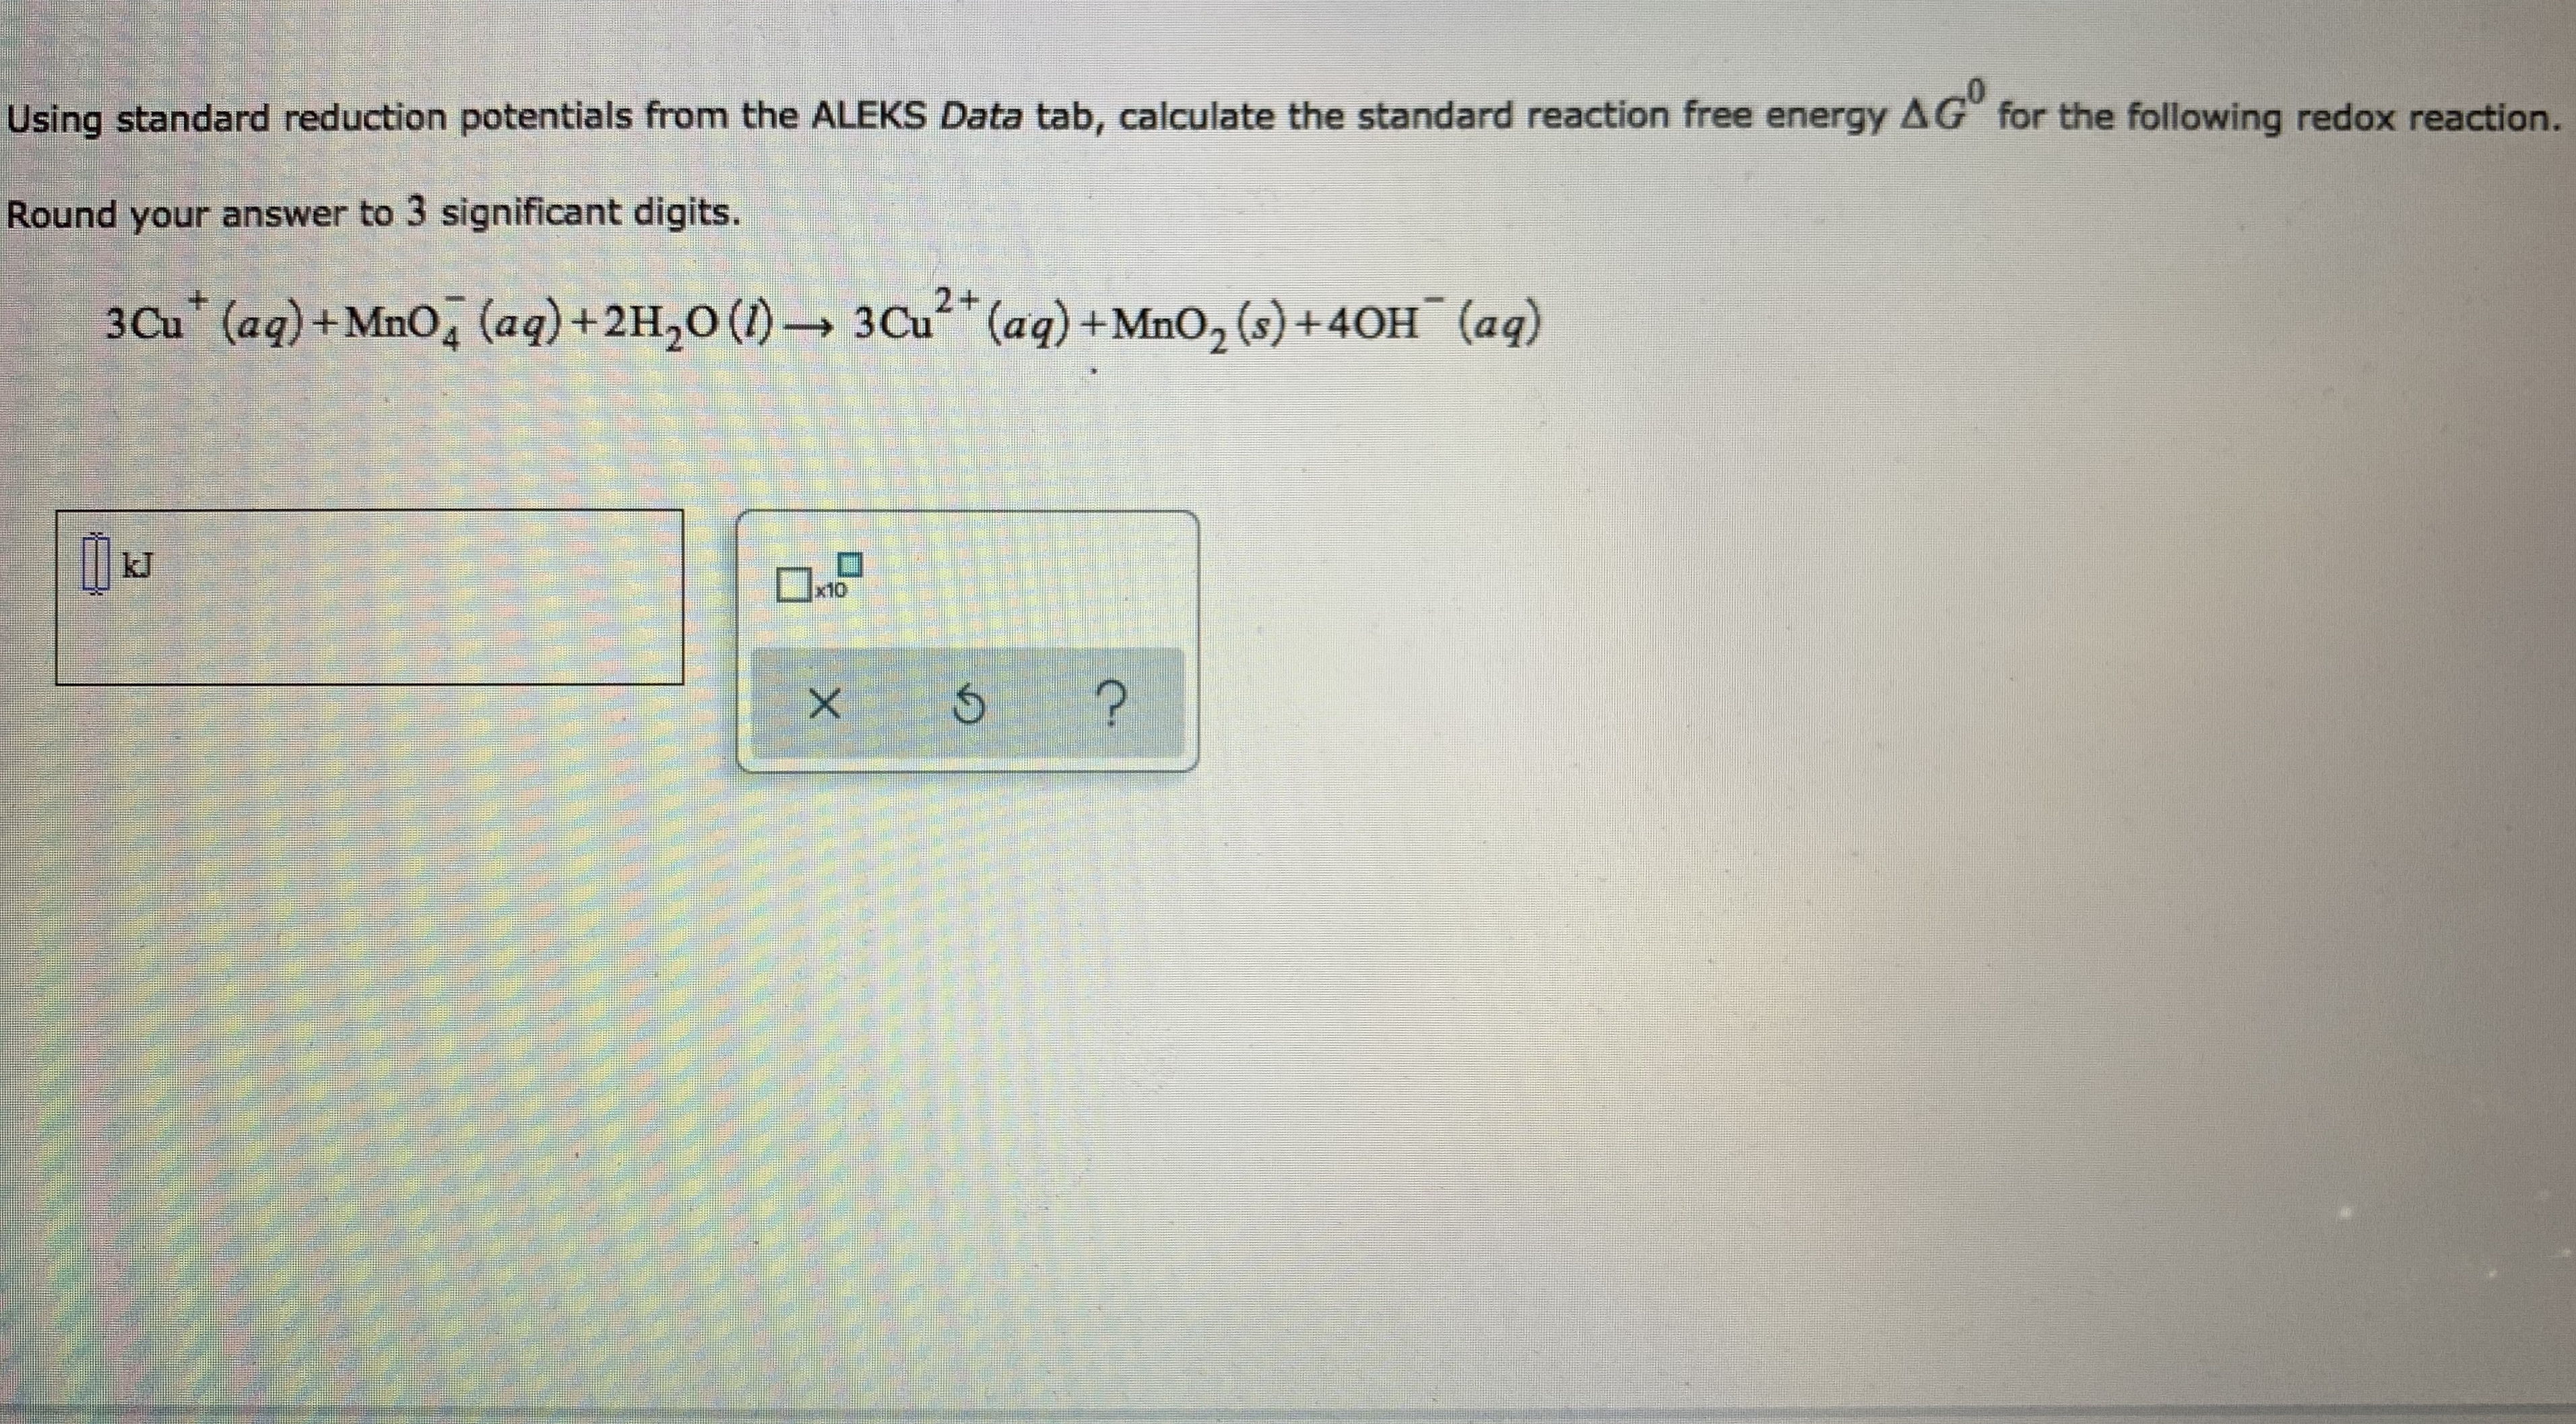 Answered Using Standard Reduction Potentials